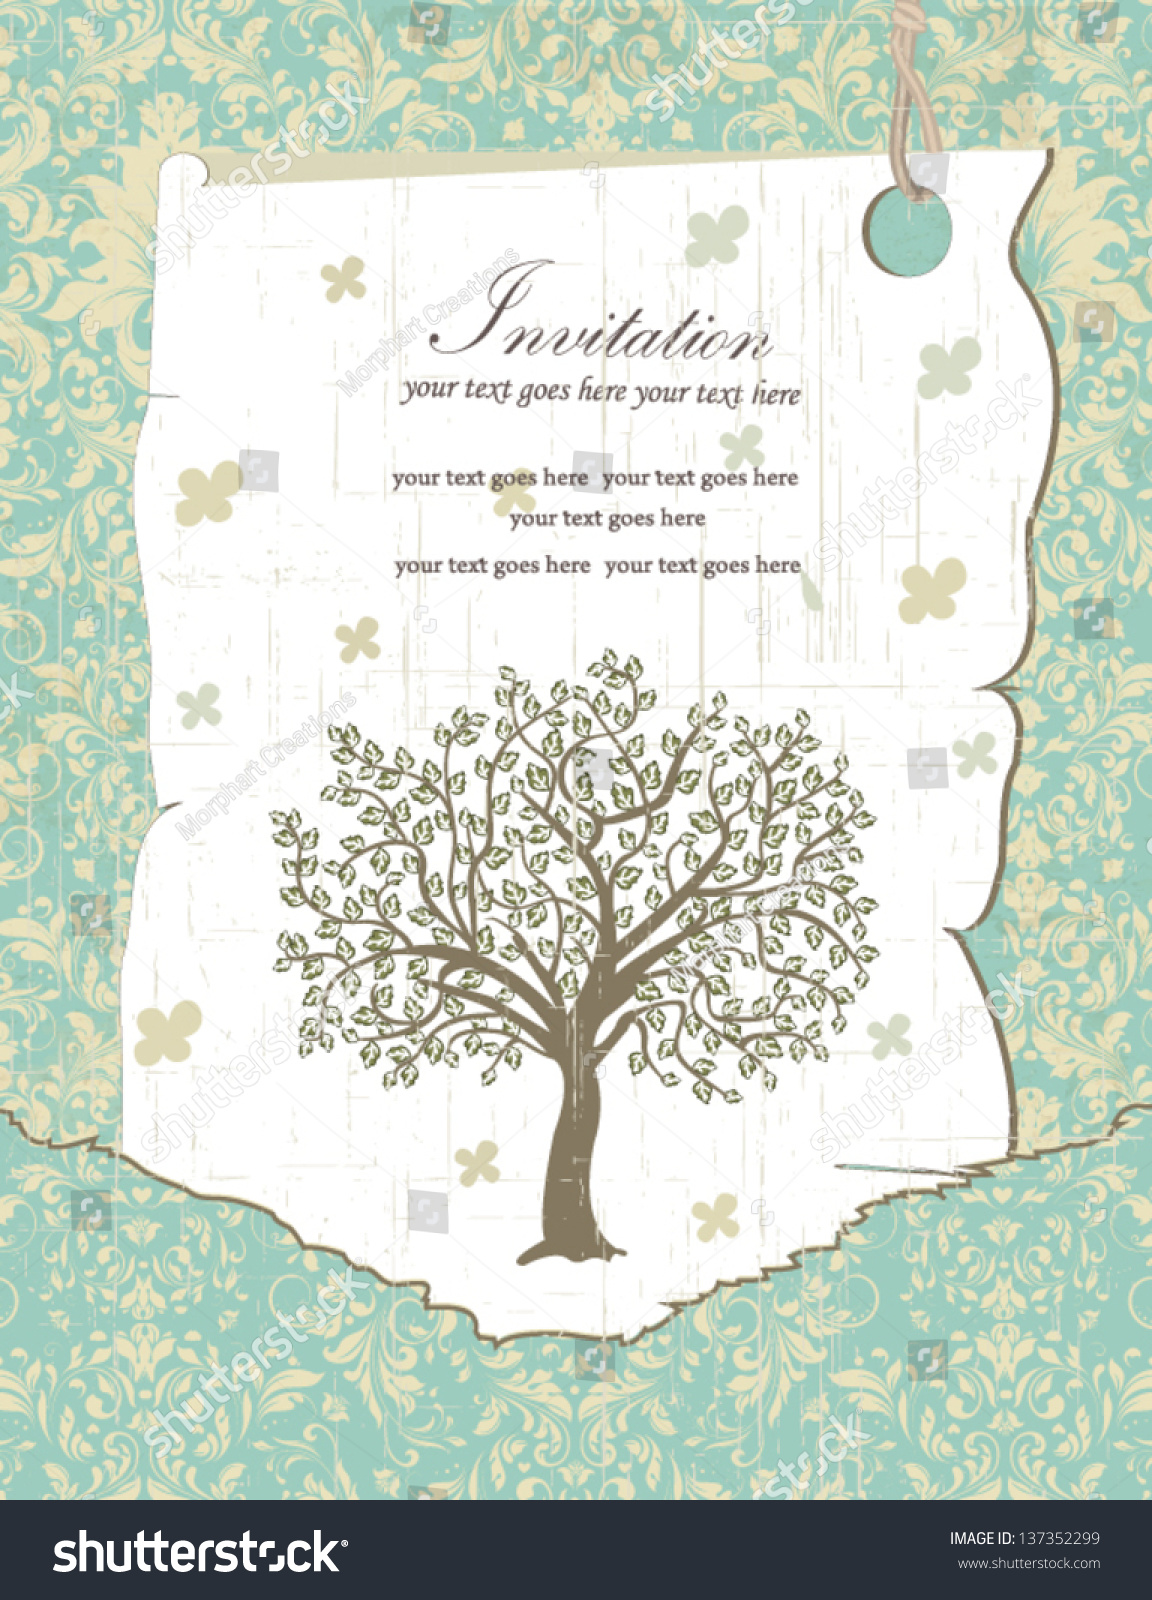 Family Reunion Invitation Sample – Family Reunion Invitation